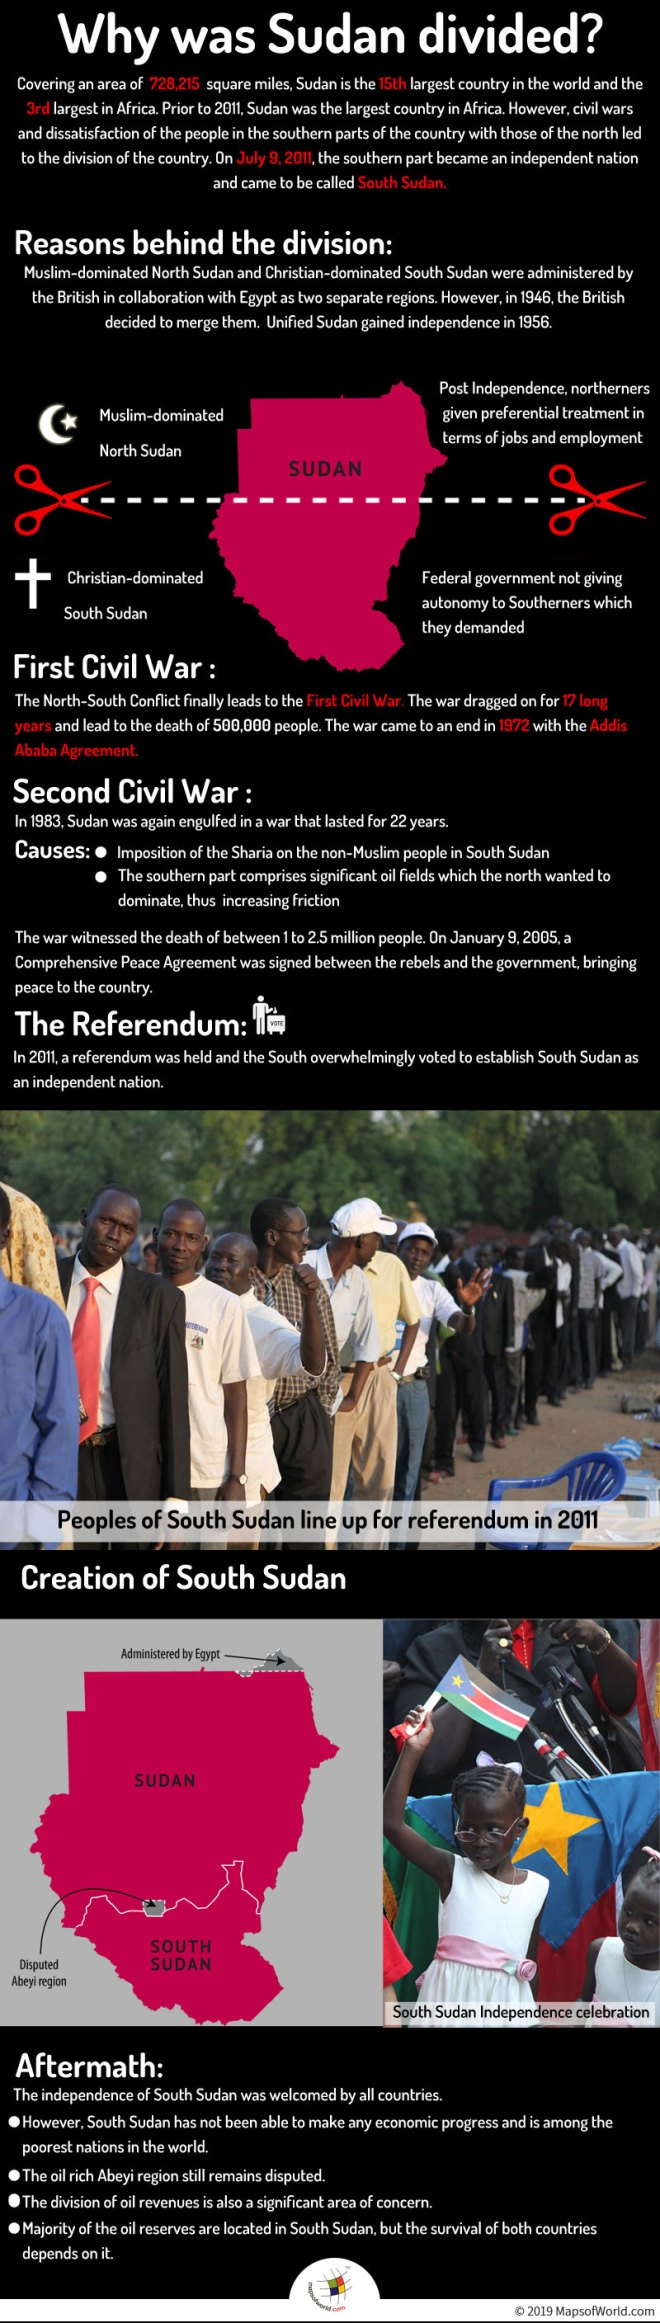 Infographic Showing Reasons Behind The Division of Sudan